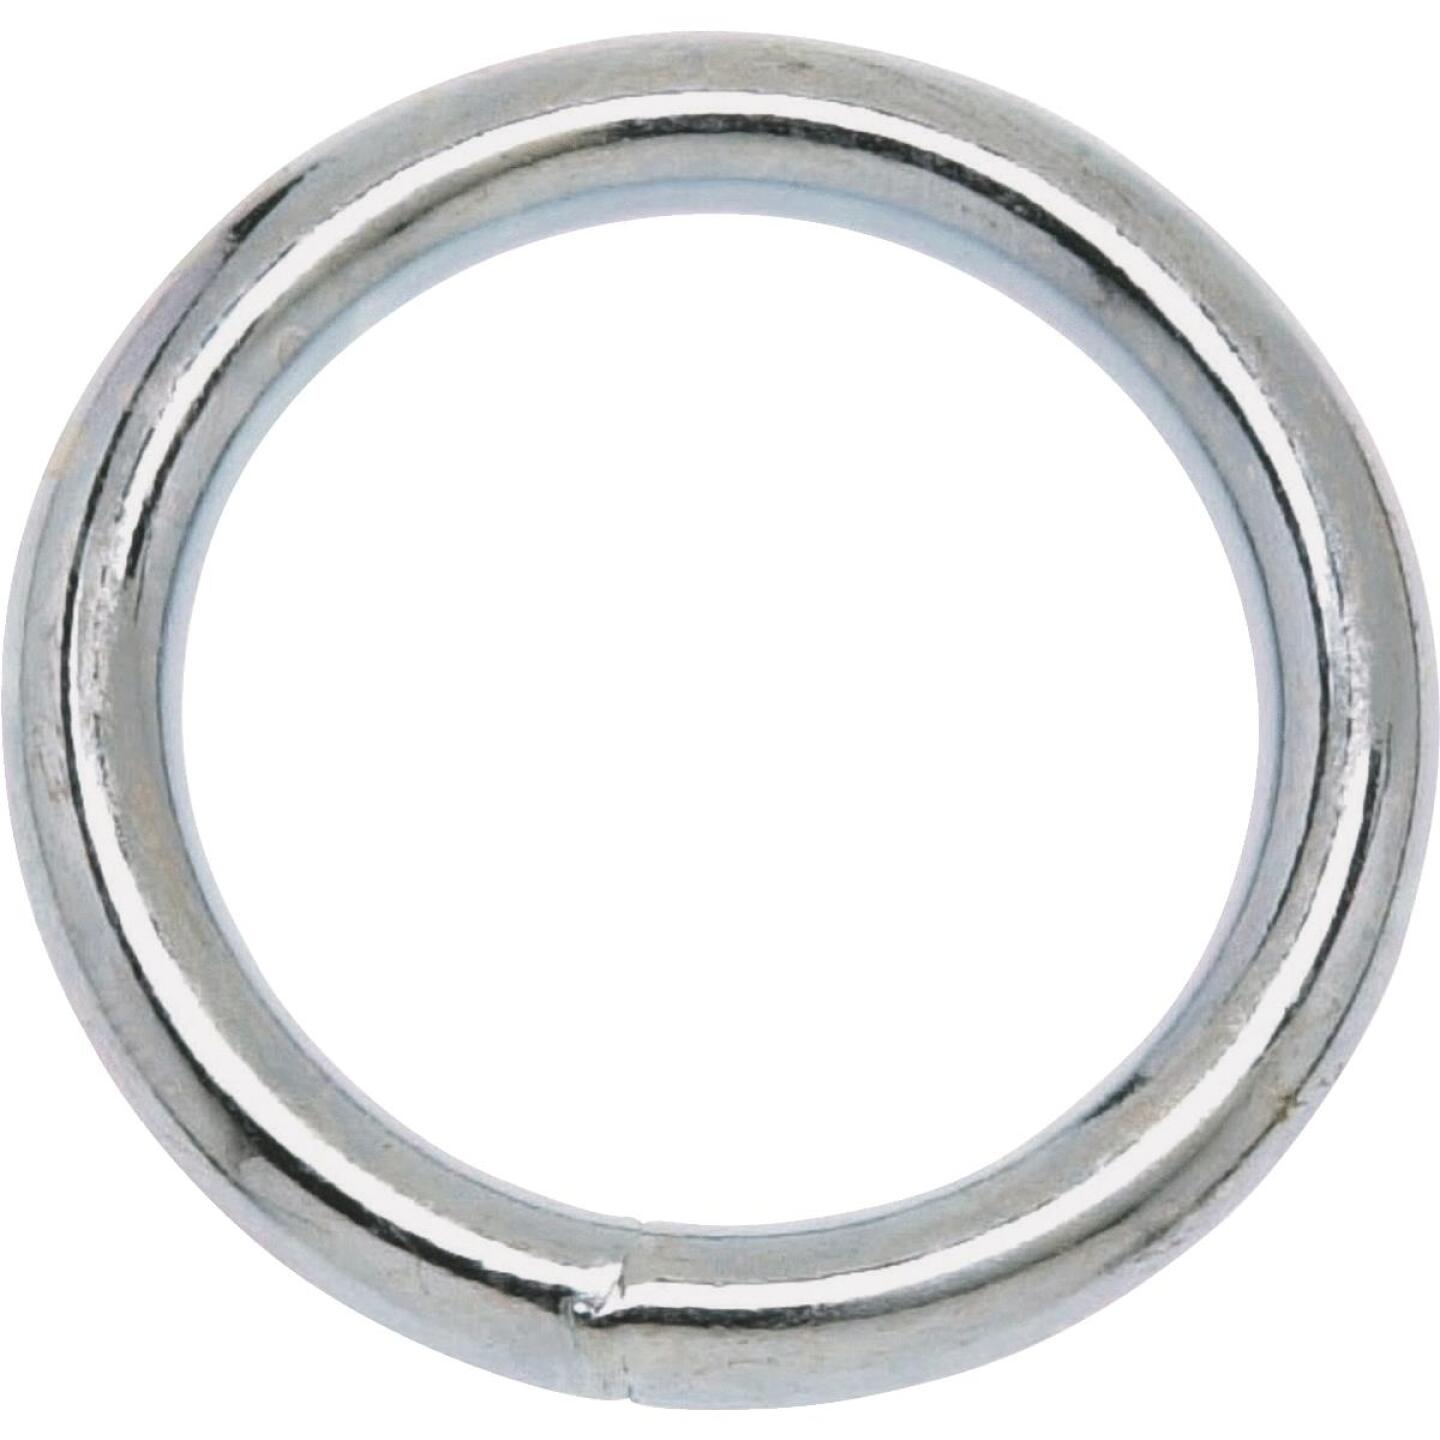 Campbell 2 In. Polished Solid Bronze Welded Ring Image 1